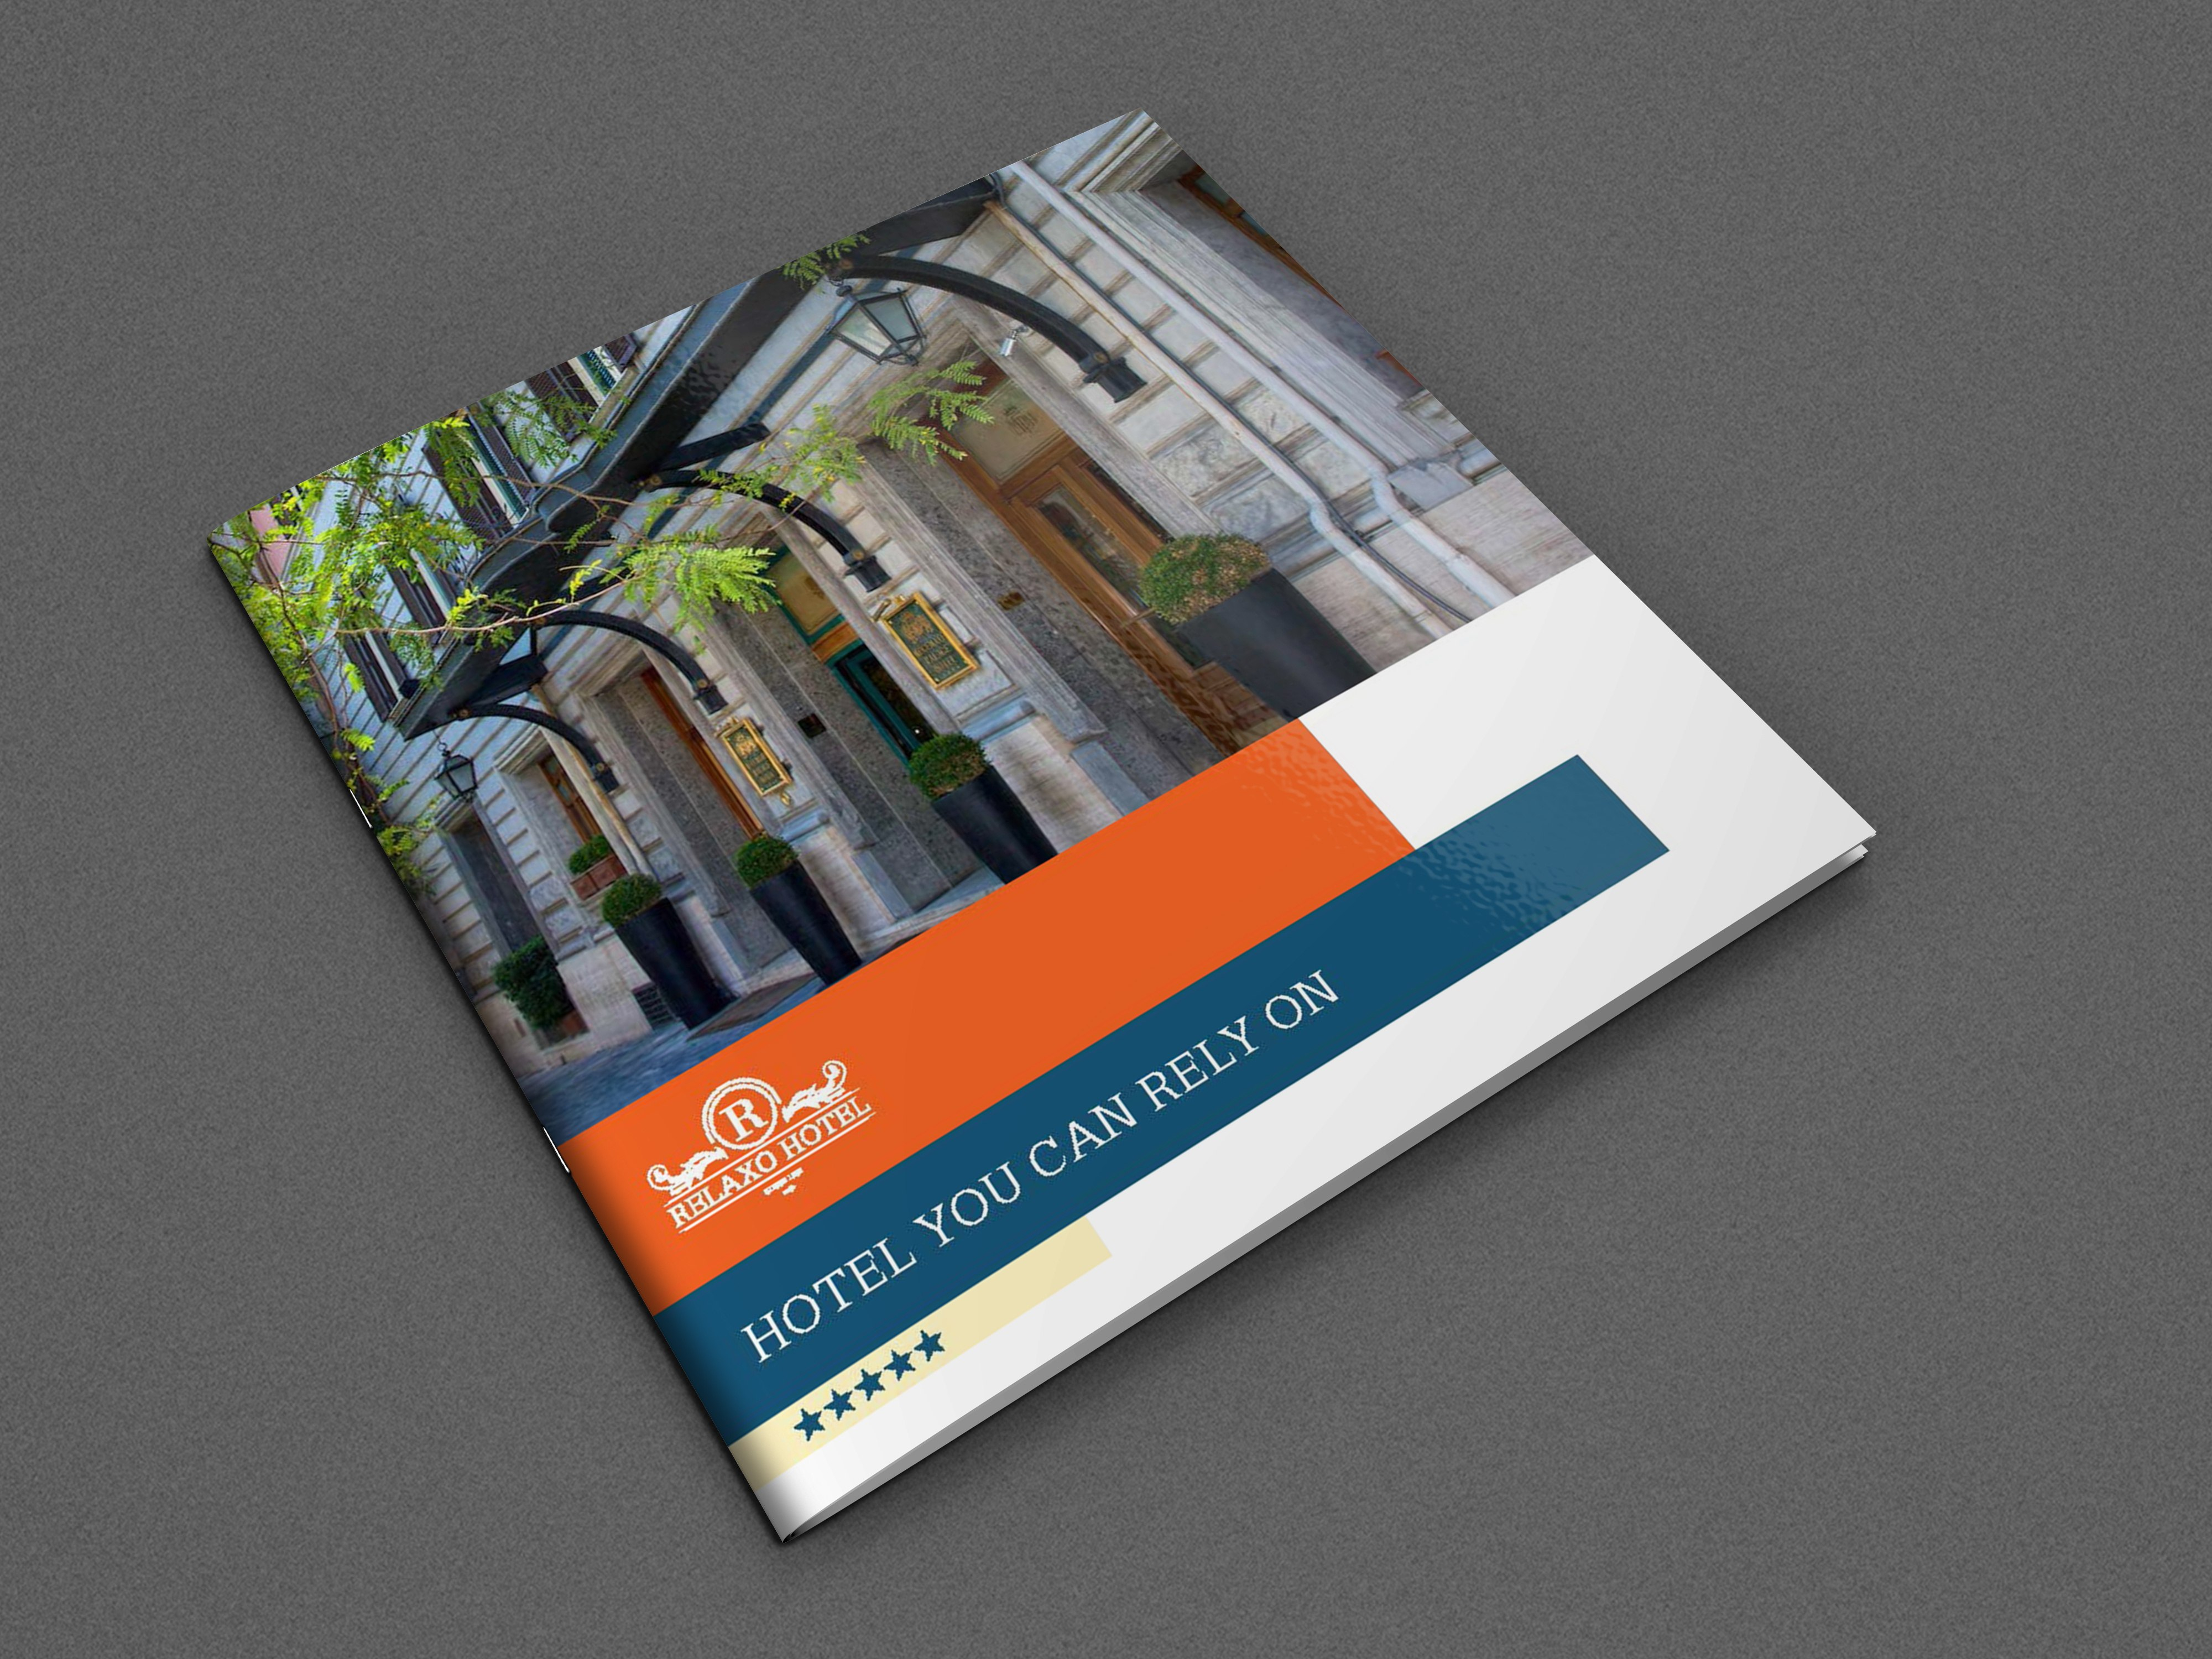 Hotel And Motel Bifold Brochure Templateowpictures On Dribbble Pertaining To Hotel Brochure Design Templates